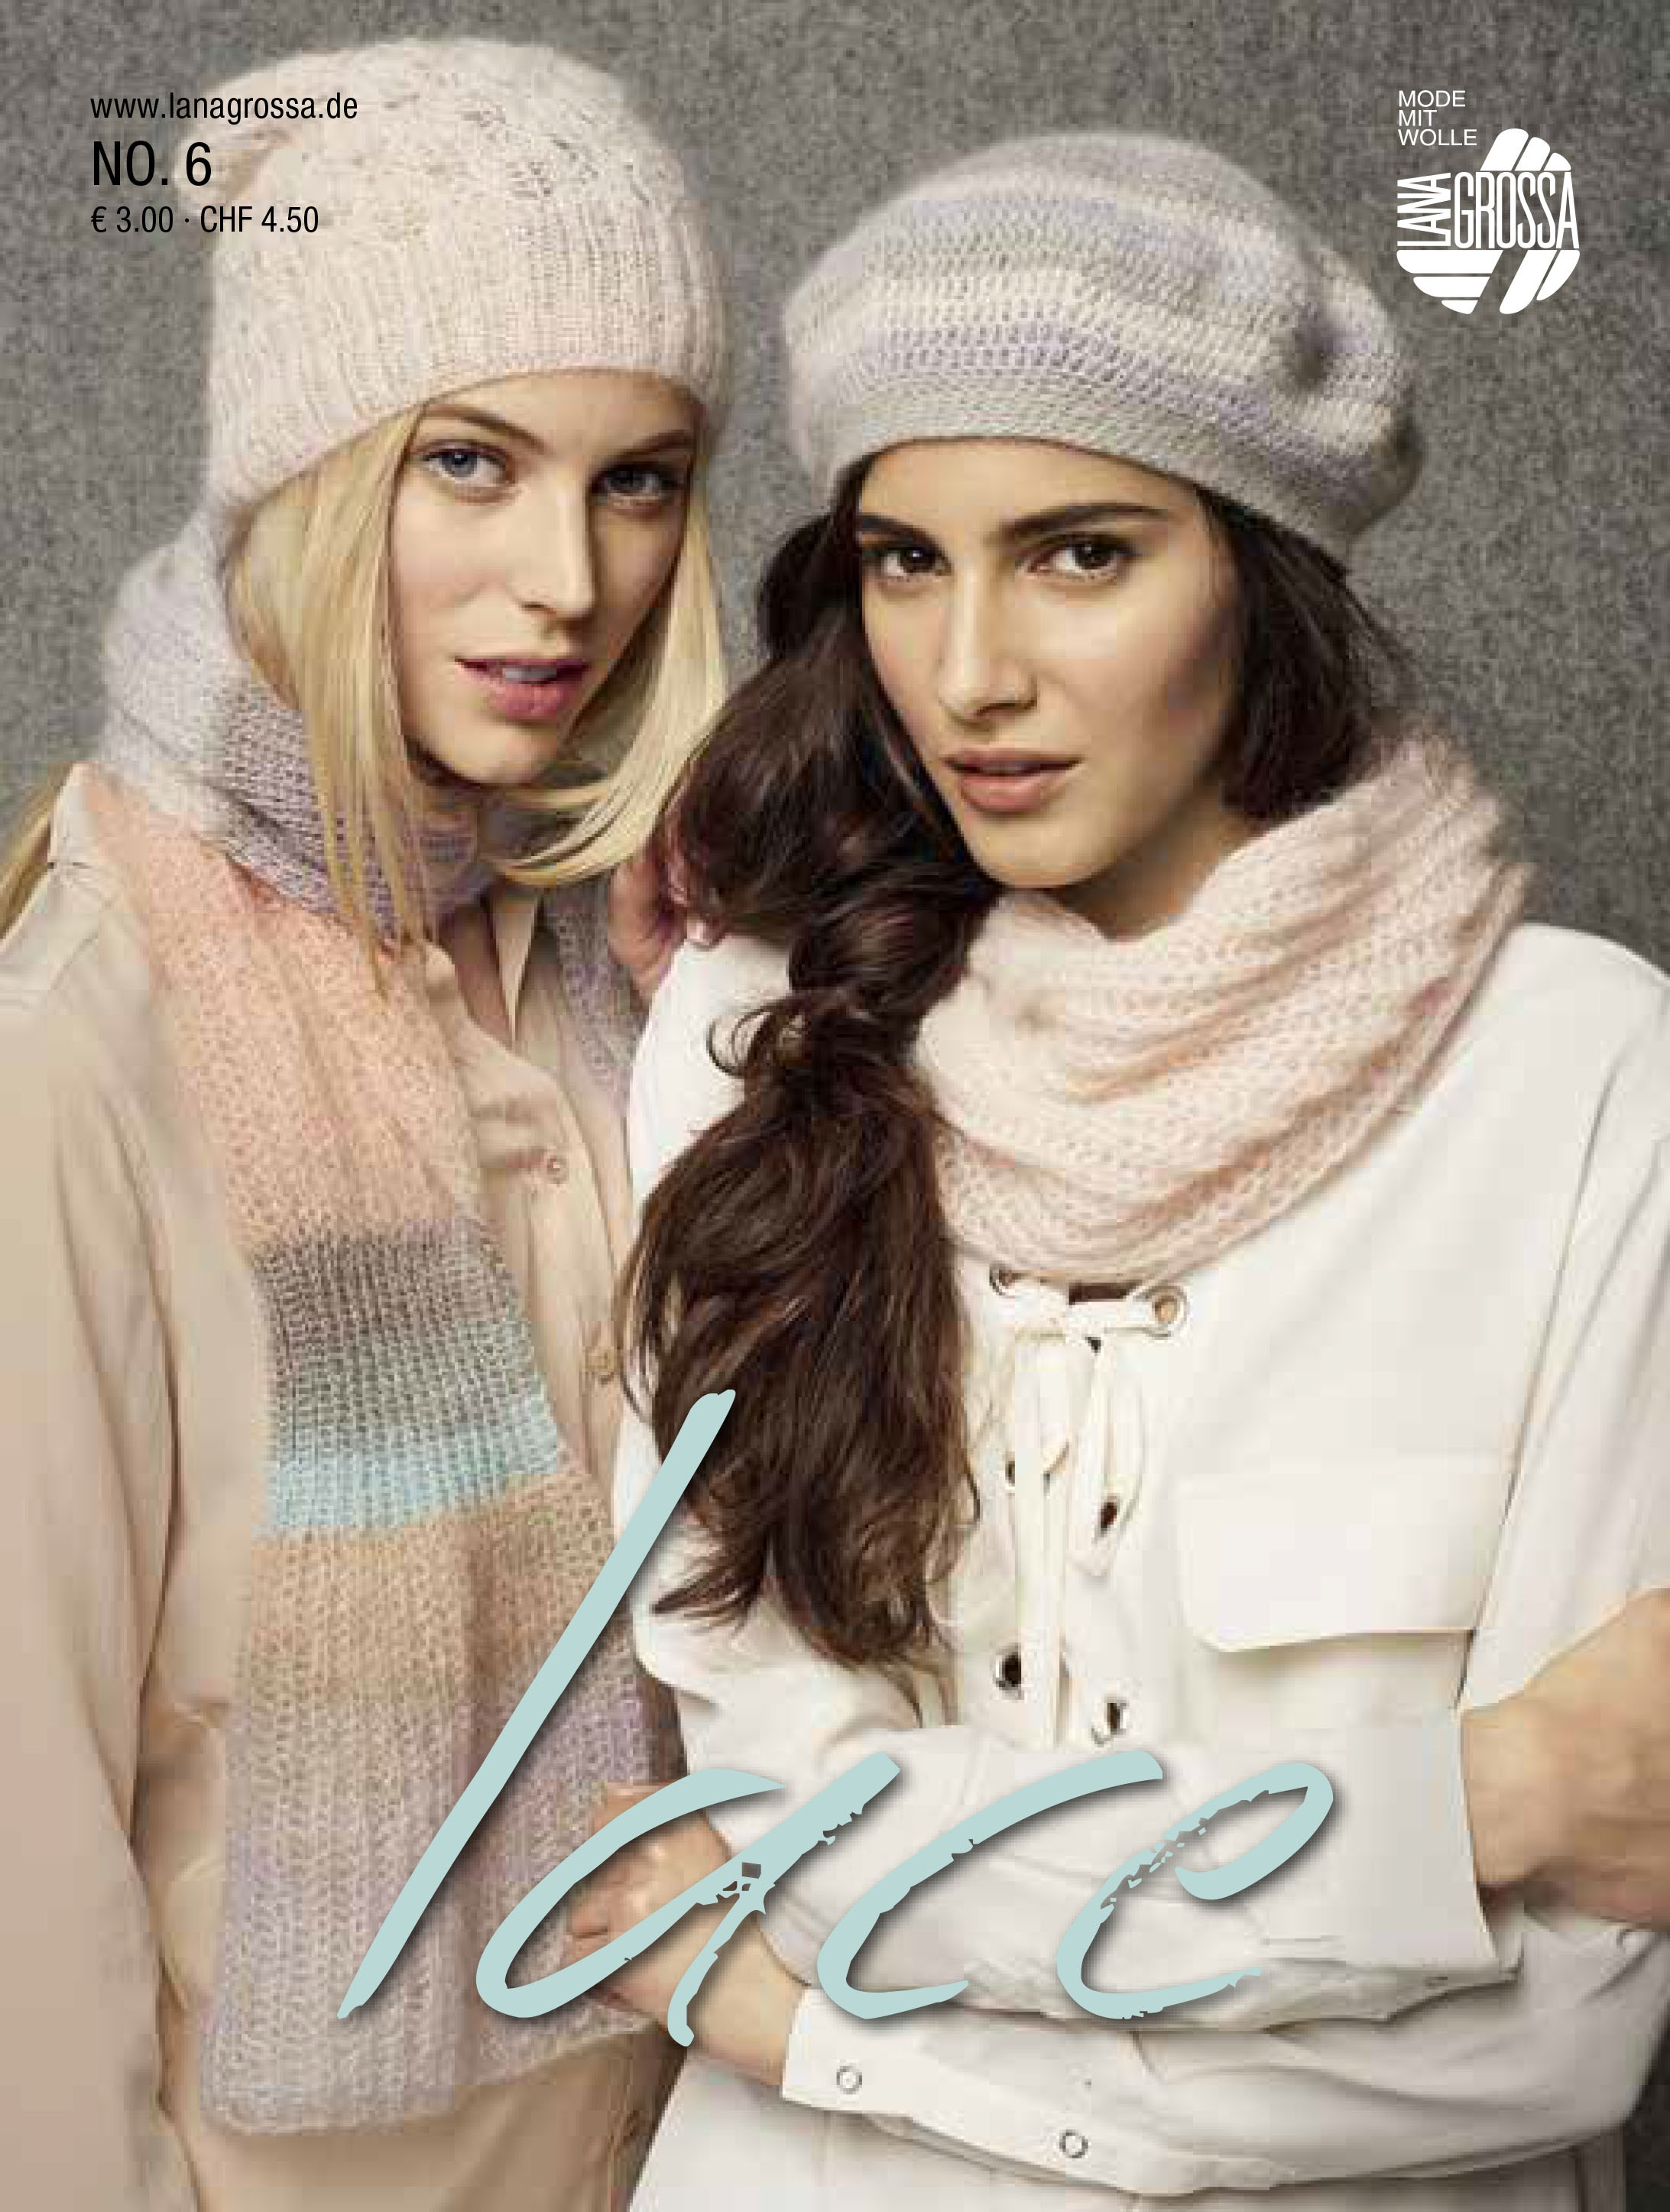 Lana Grossa LACE No. 6 - German Edition